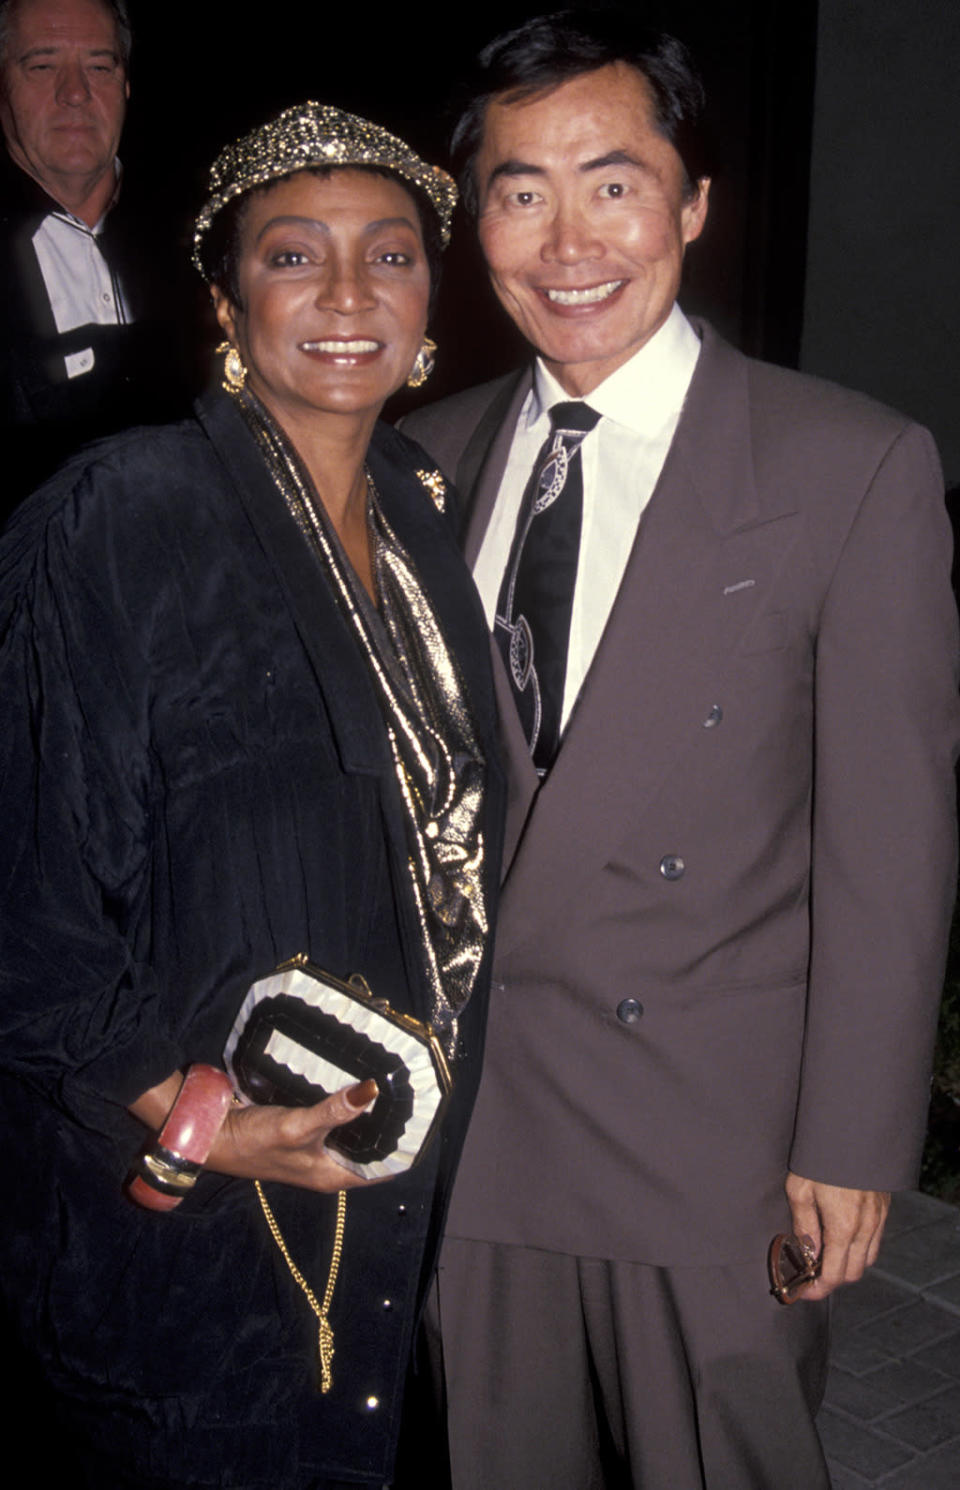 <p>Nichelle Nichols and George Takei on Dec. 3, 1991, in Hollywood. <i>Star Trek VI</i> would be their final big-screen appearances in their respective roles as Uhura and Sulu. <i>(Photo: Ron Galella/WireImage)</i></p>